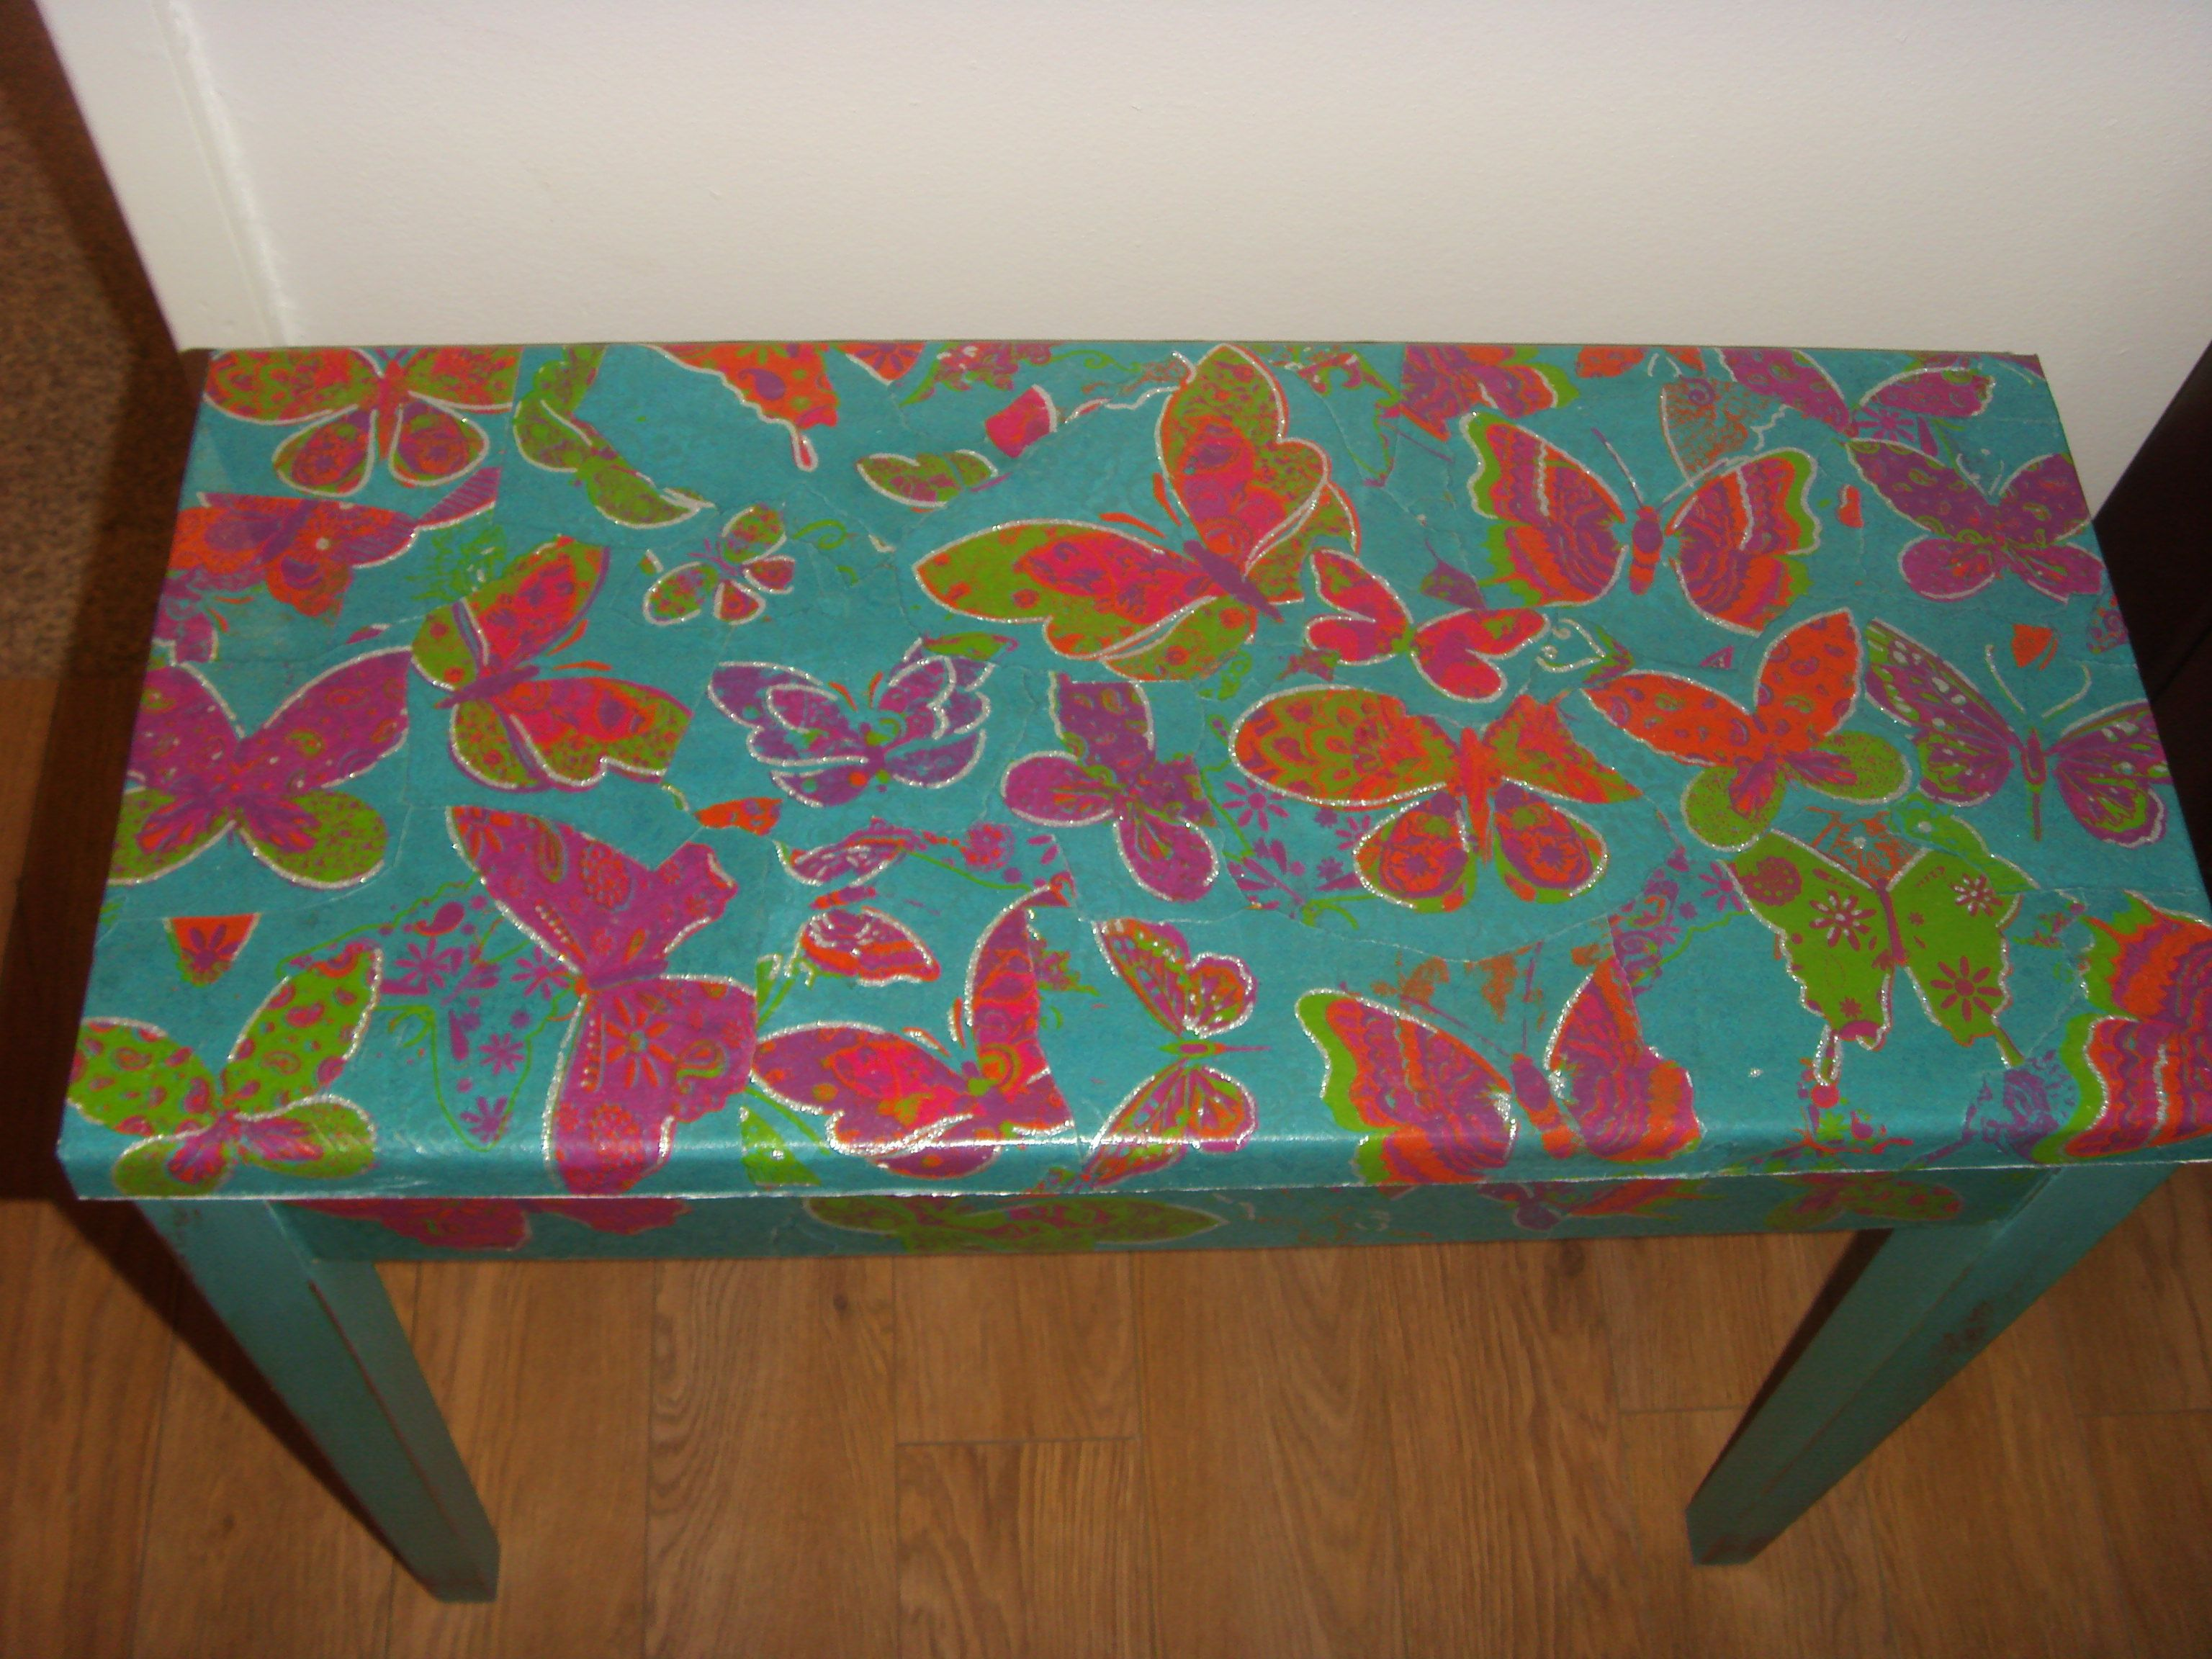 An old table I decoupaged to upcylce it